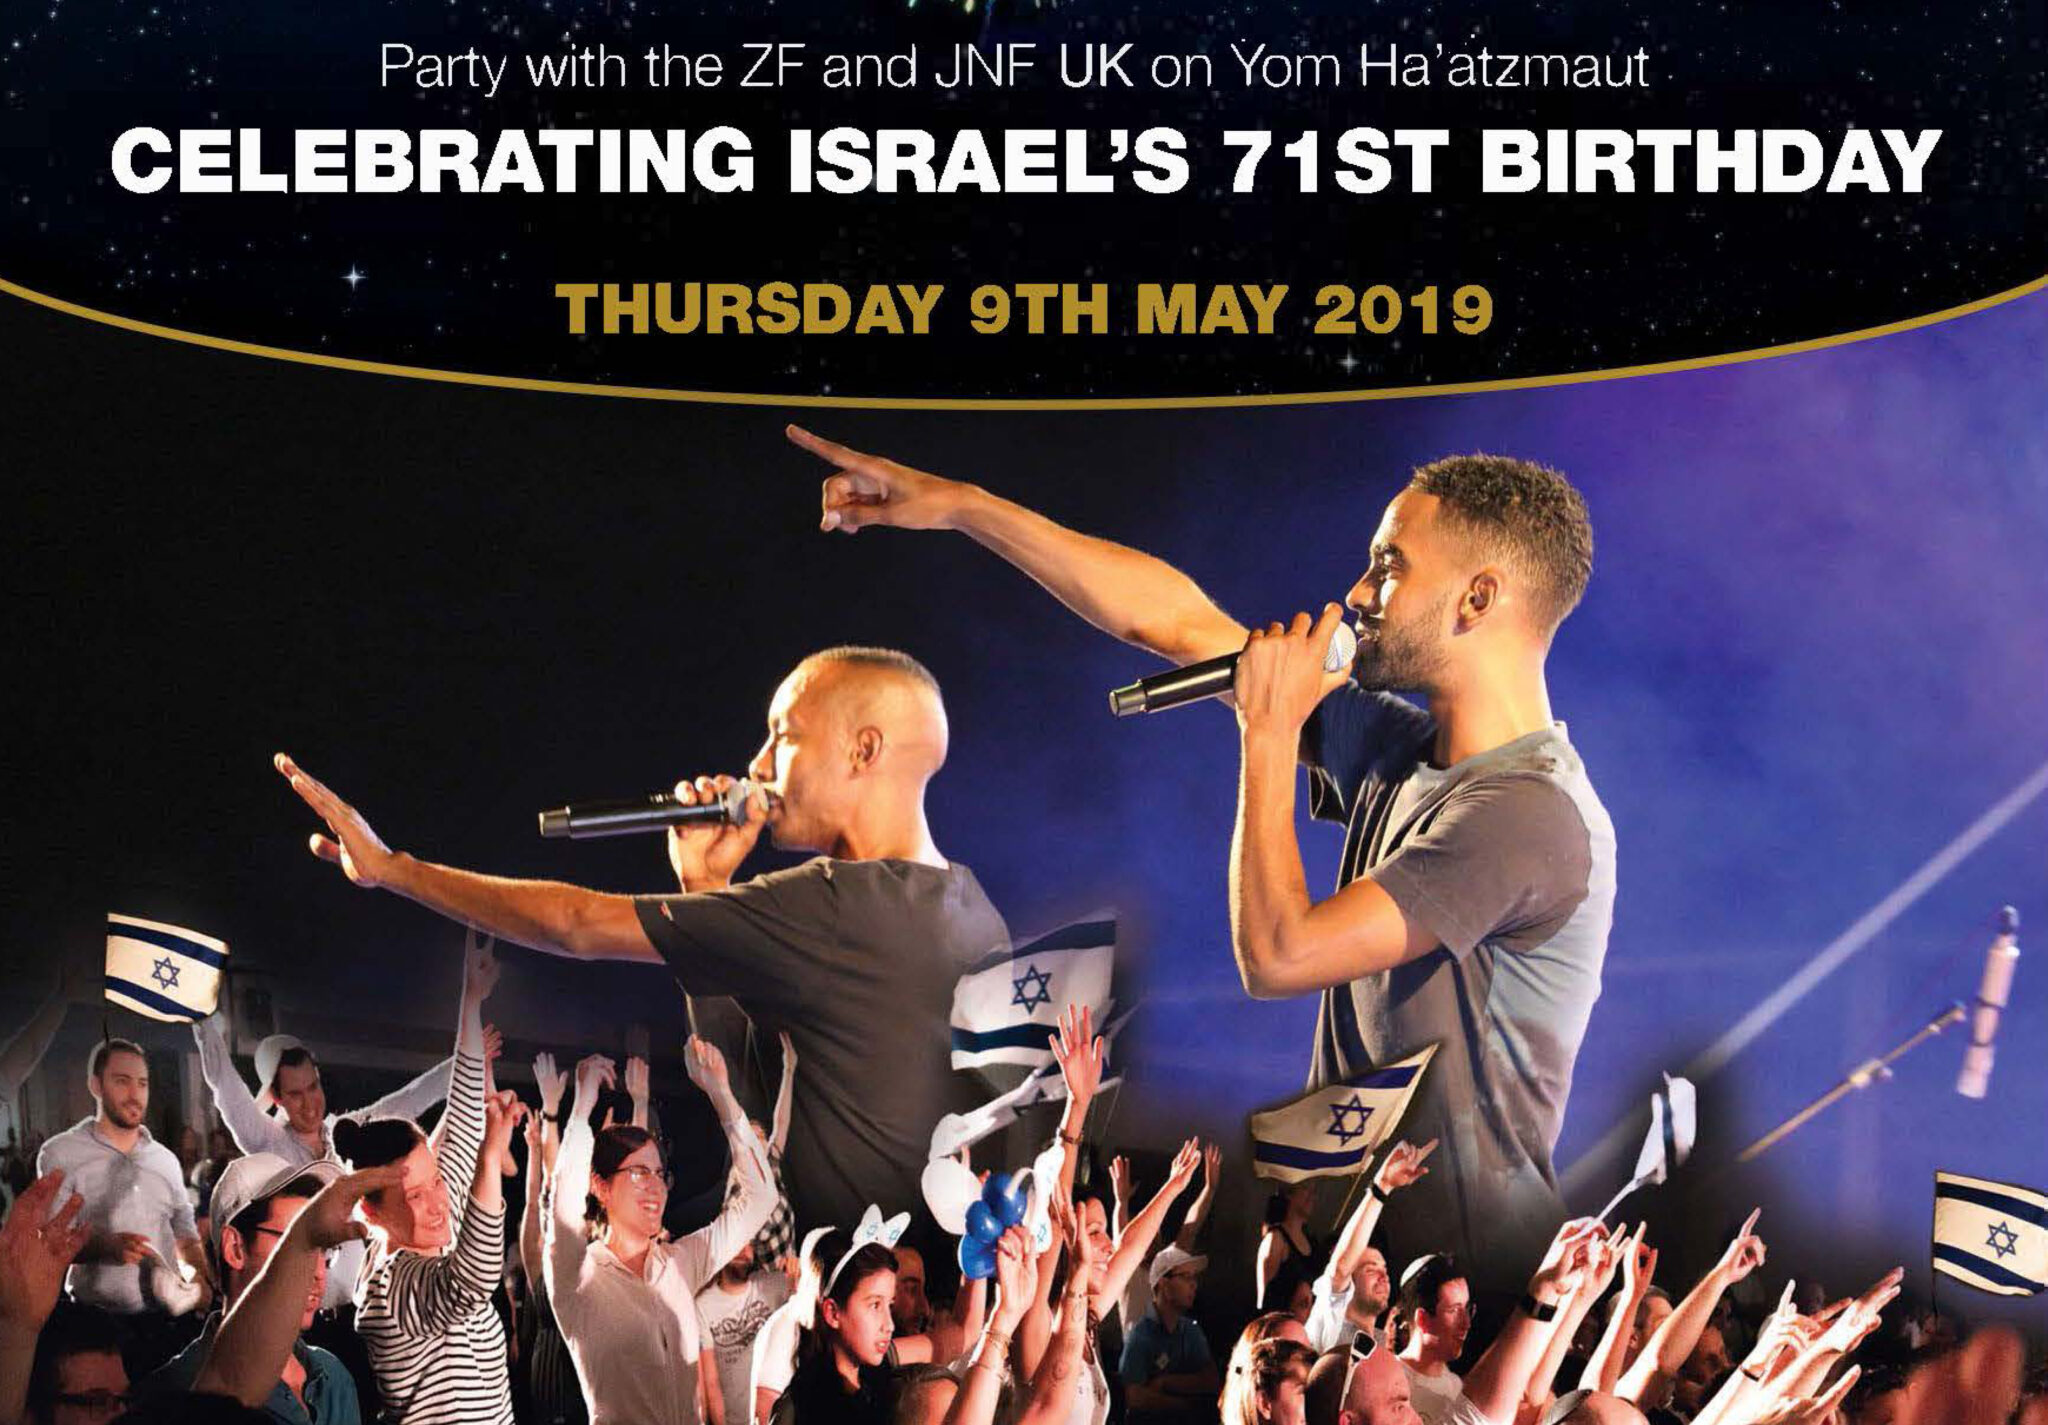 Party with the ZF and JNF UK on Yom Ha'atzmaut